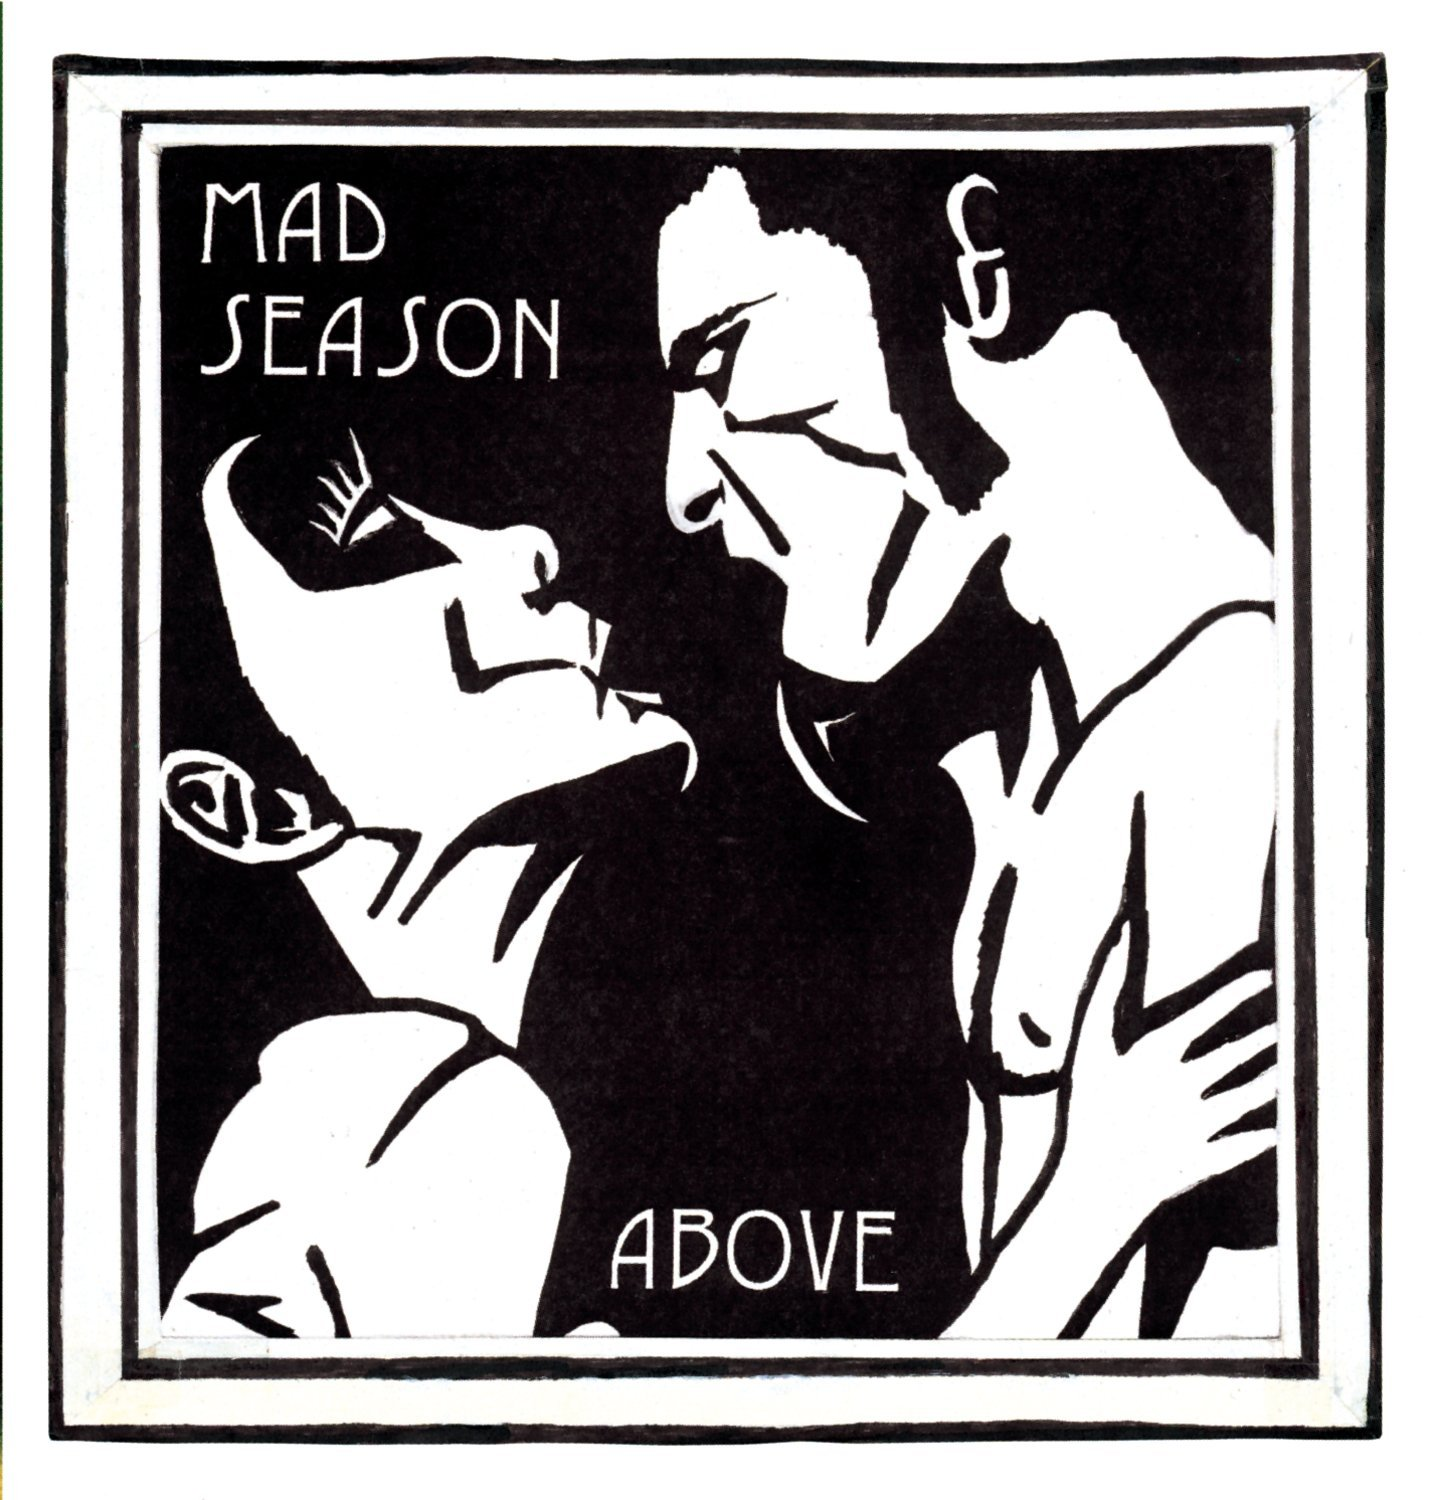 Mad Season: Above (1995).